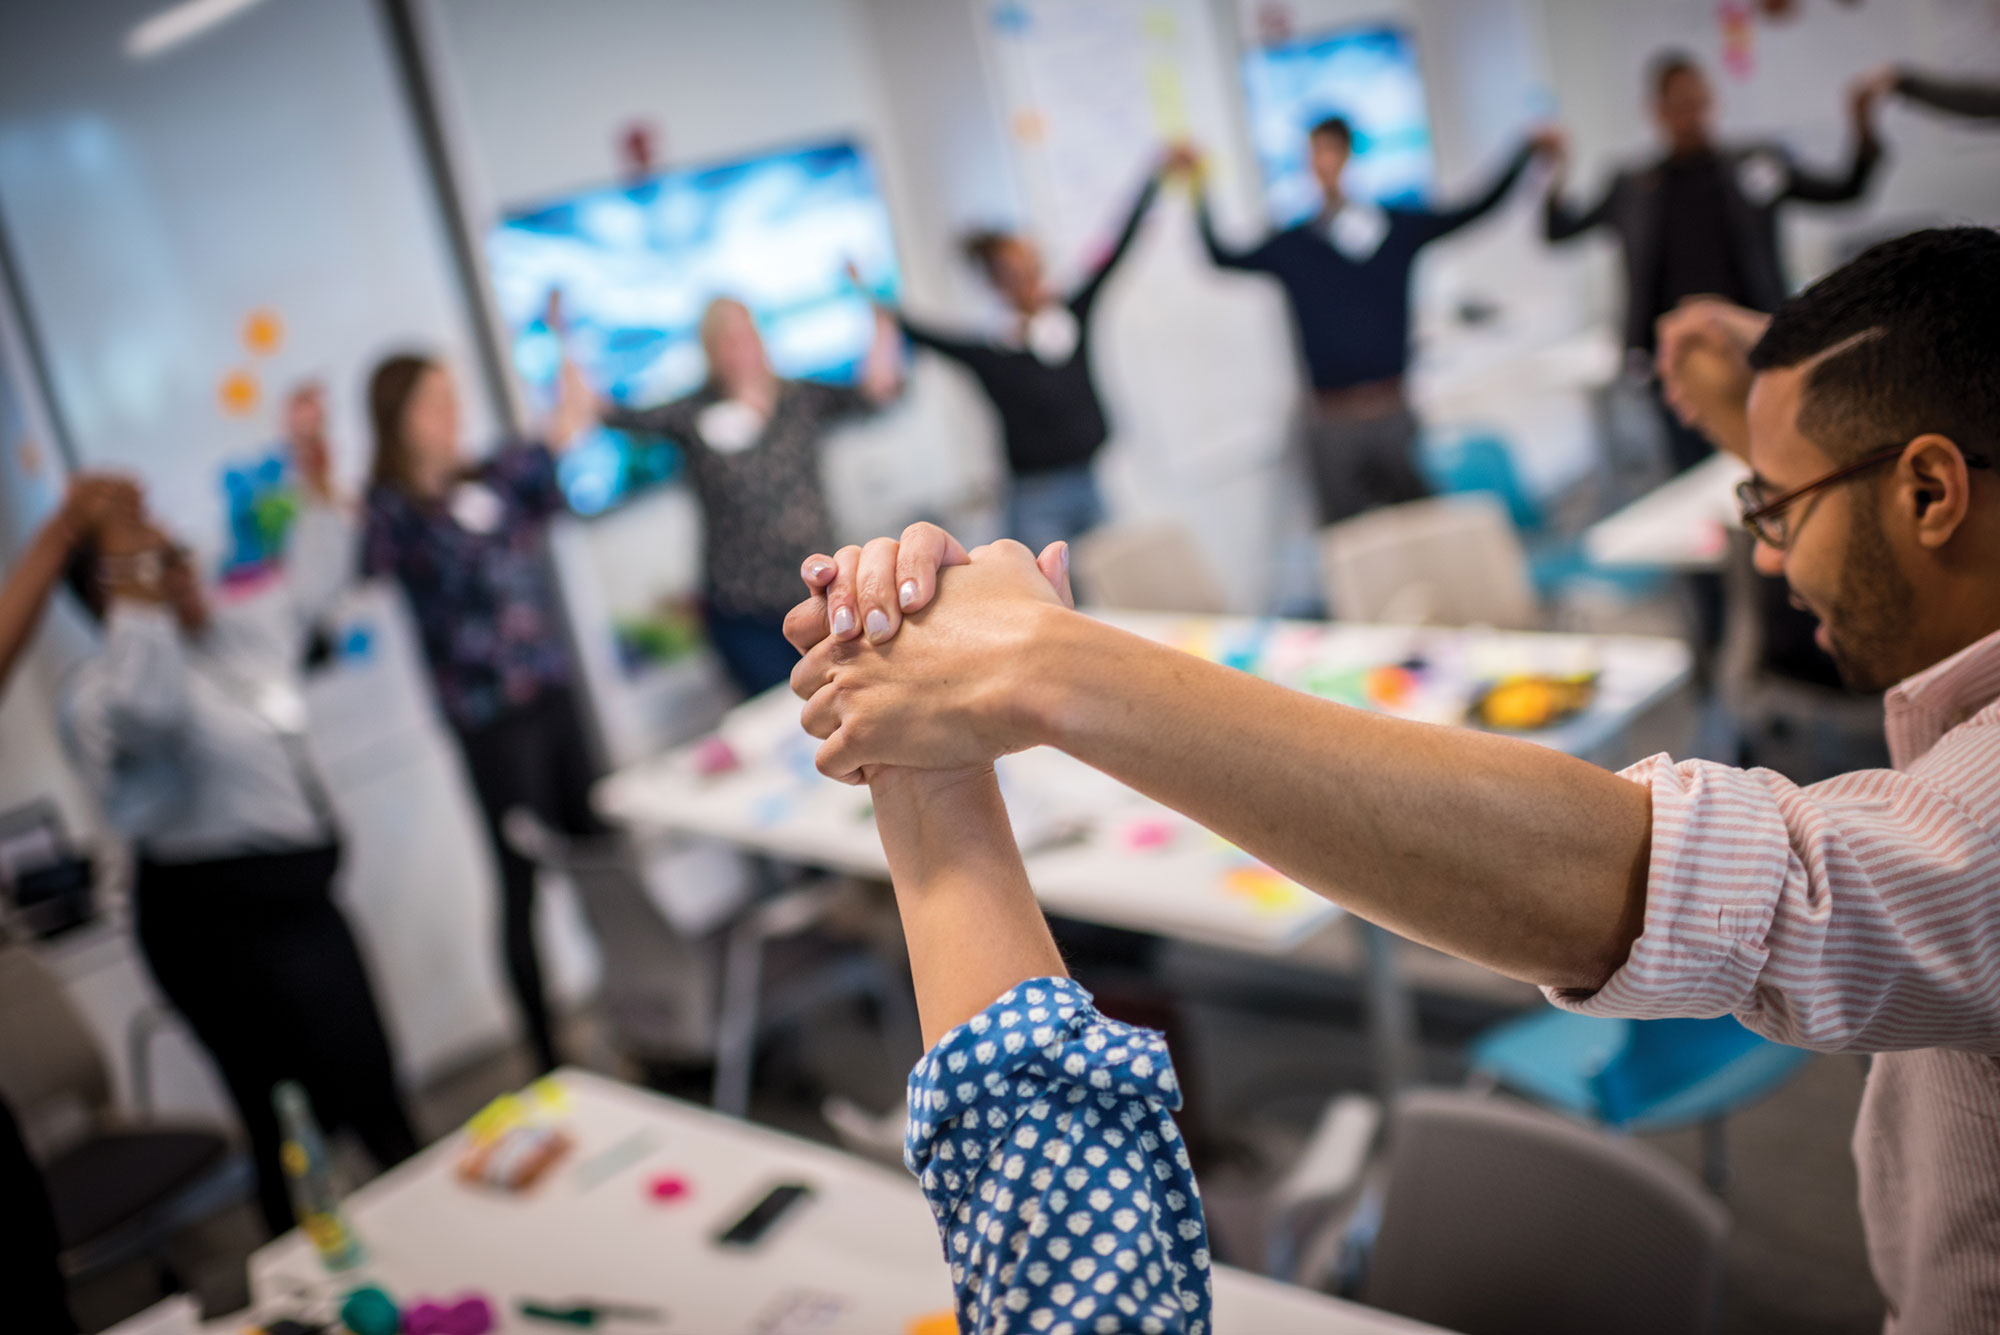 Two program participants holding hands during a workshop session.